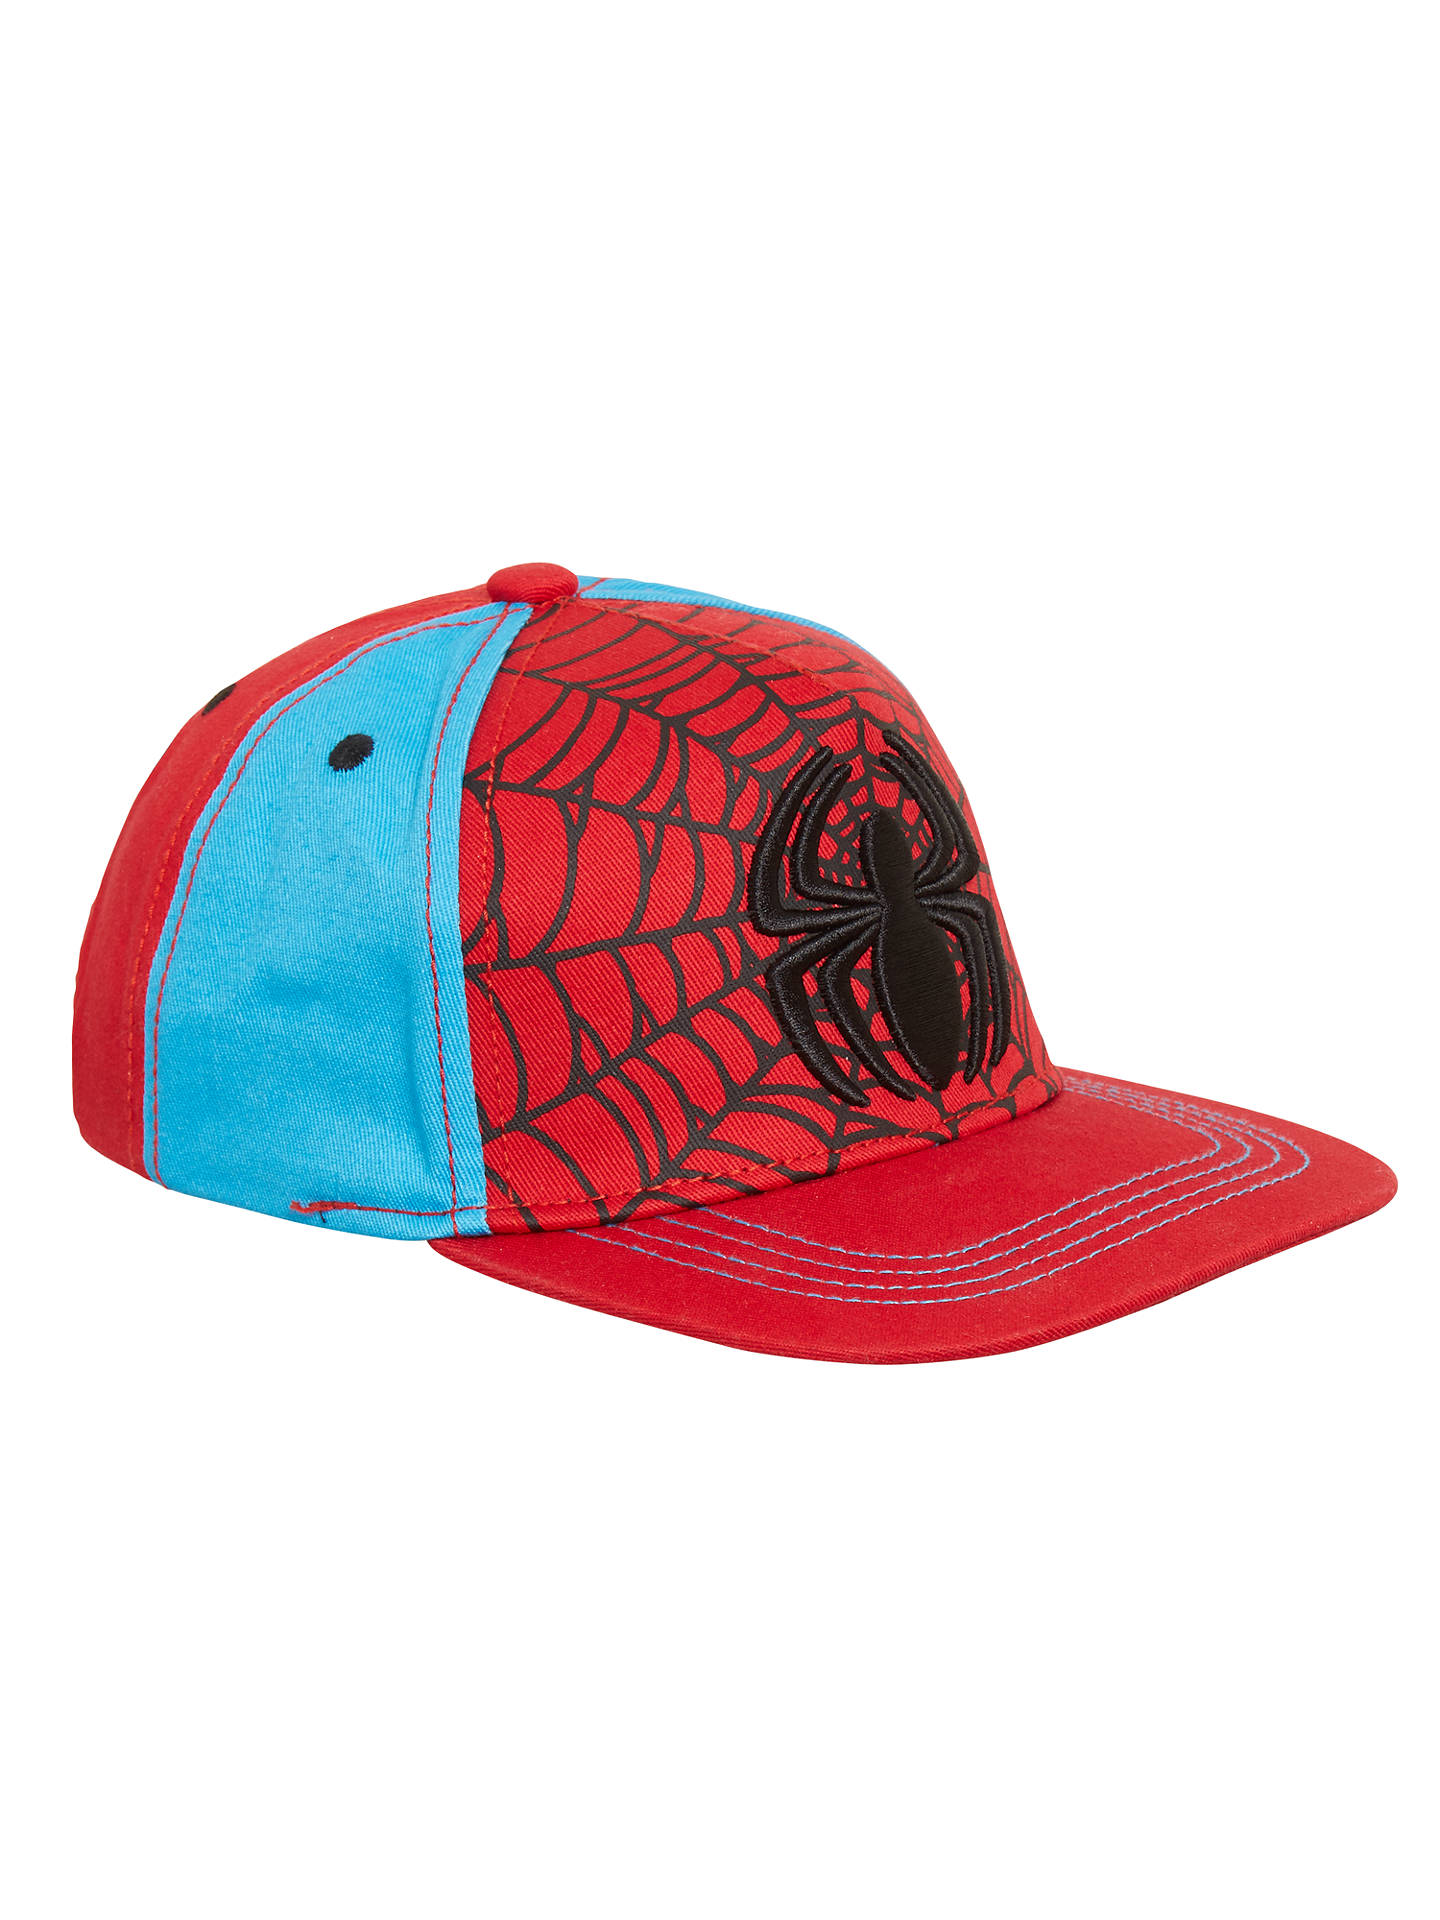 0cf128f820a36a Marvel Children's Spider-Man Baseball Cap, Red at John Lewis & Partners